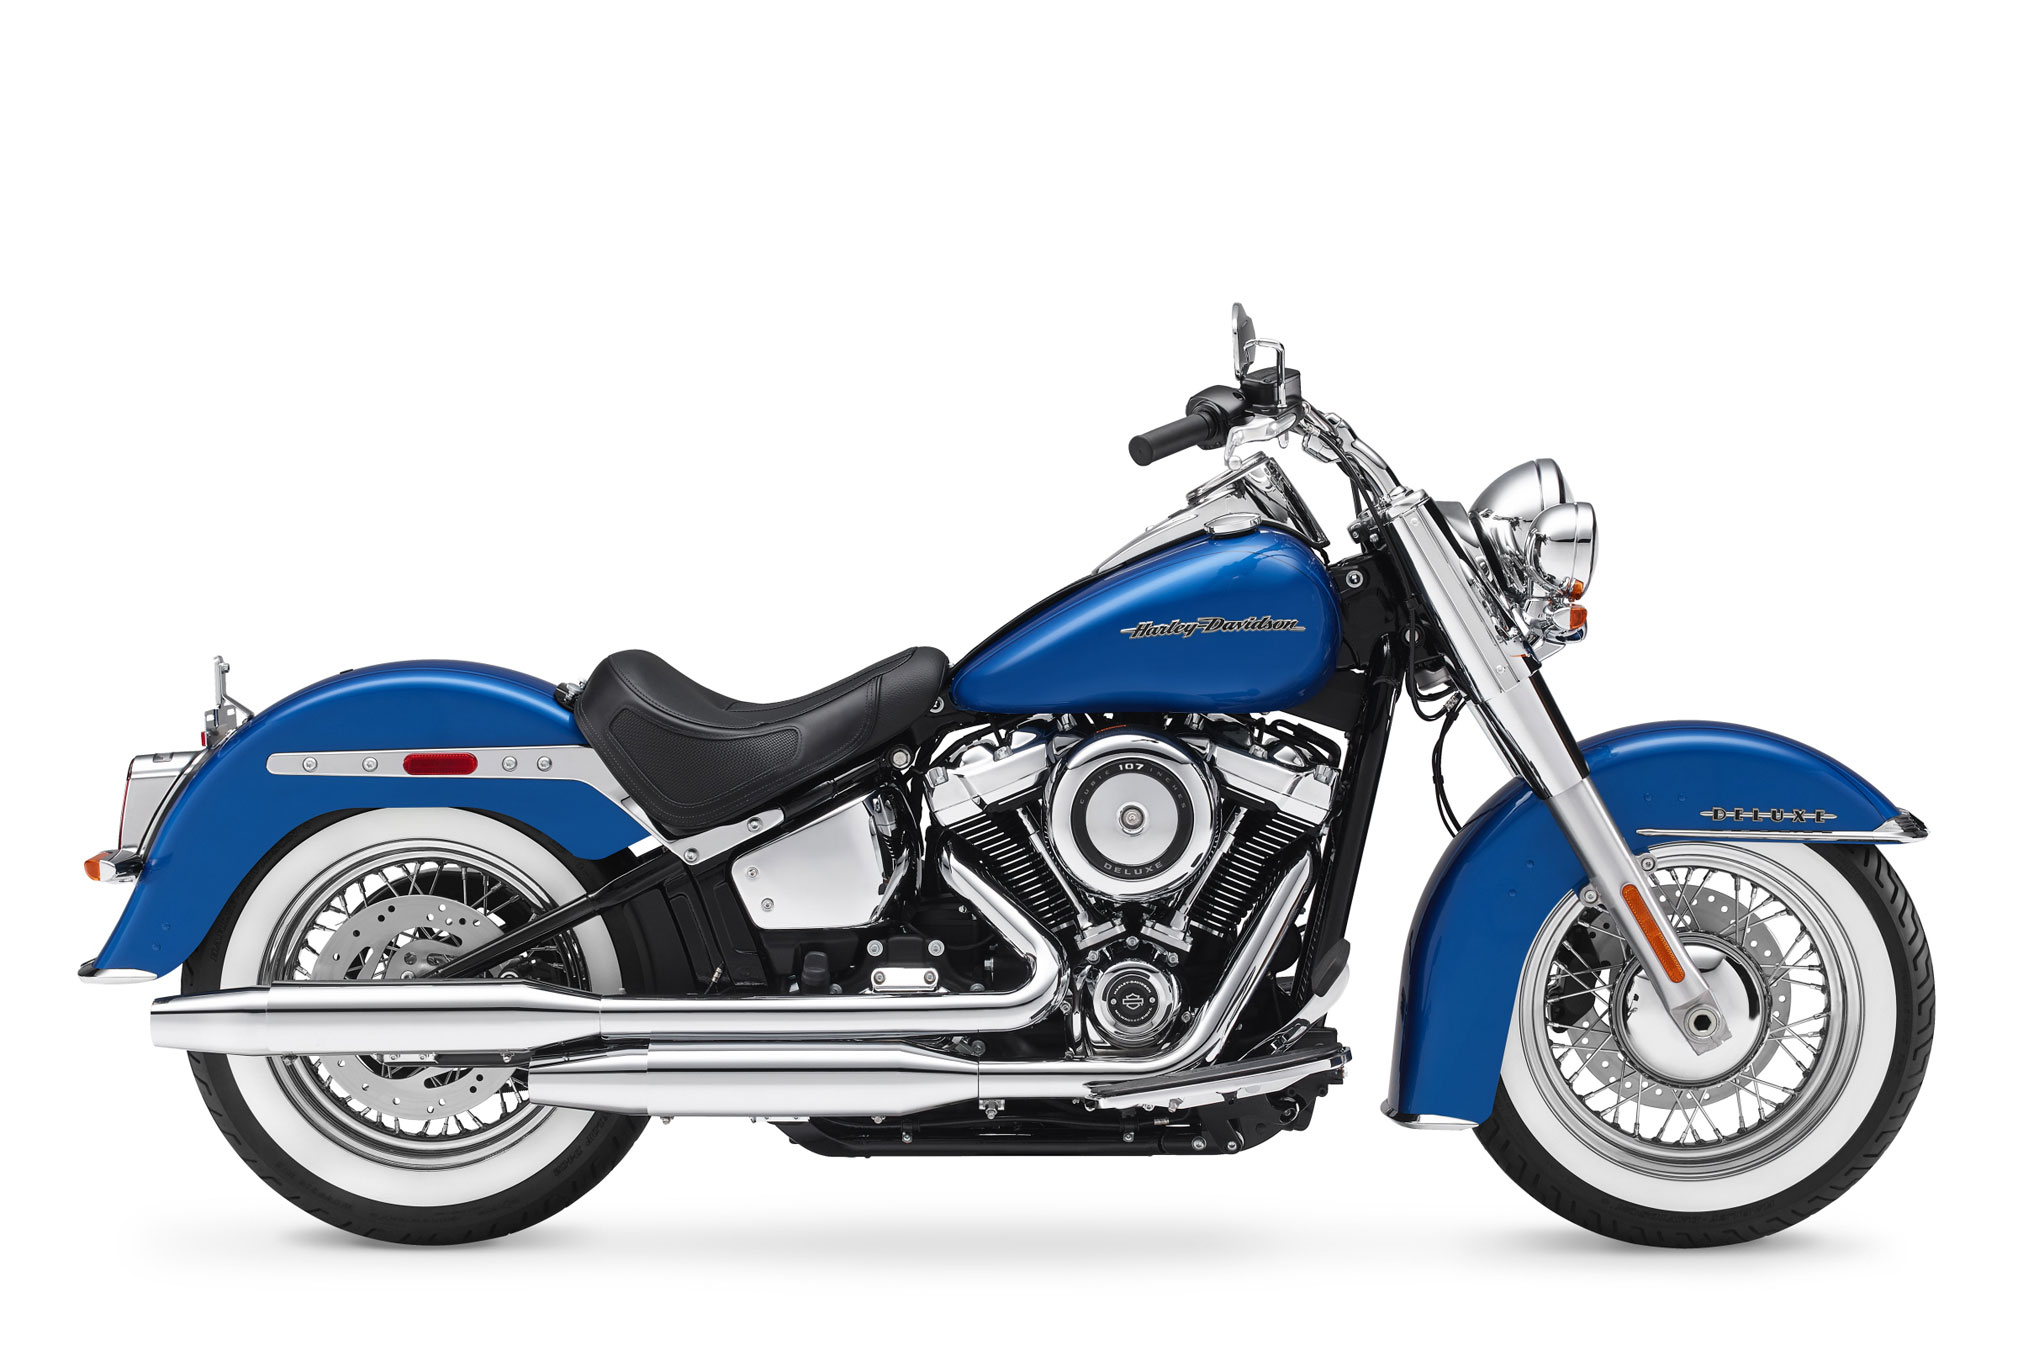 2018 Harley-Davidson Deluxe Review • Total Motorcycle